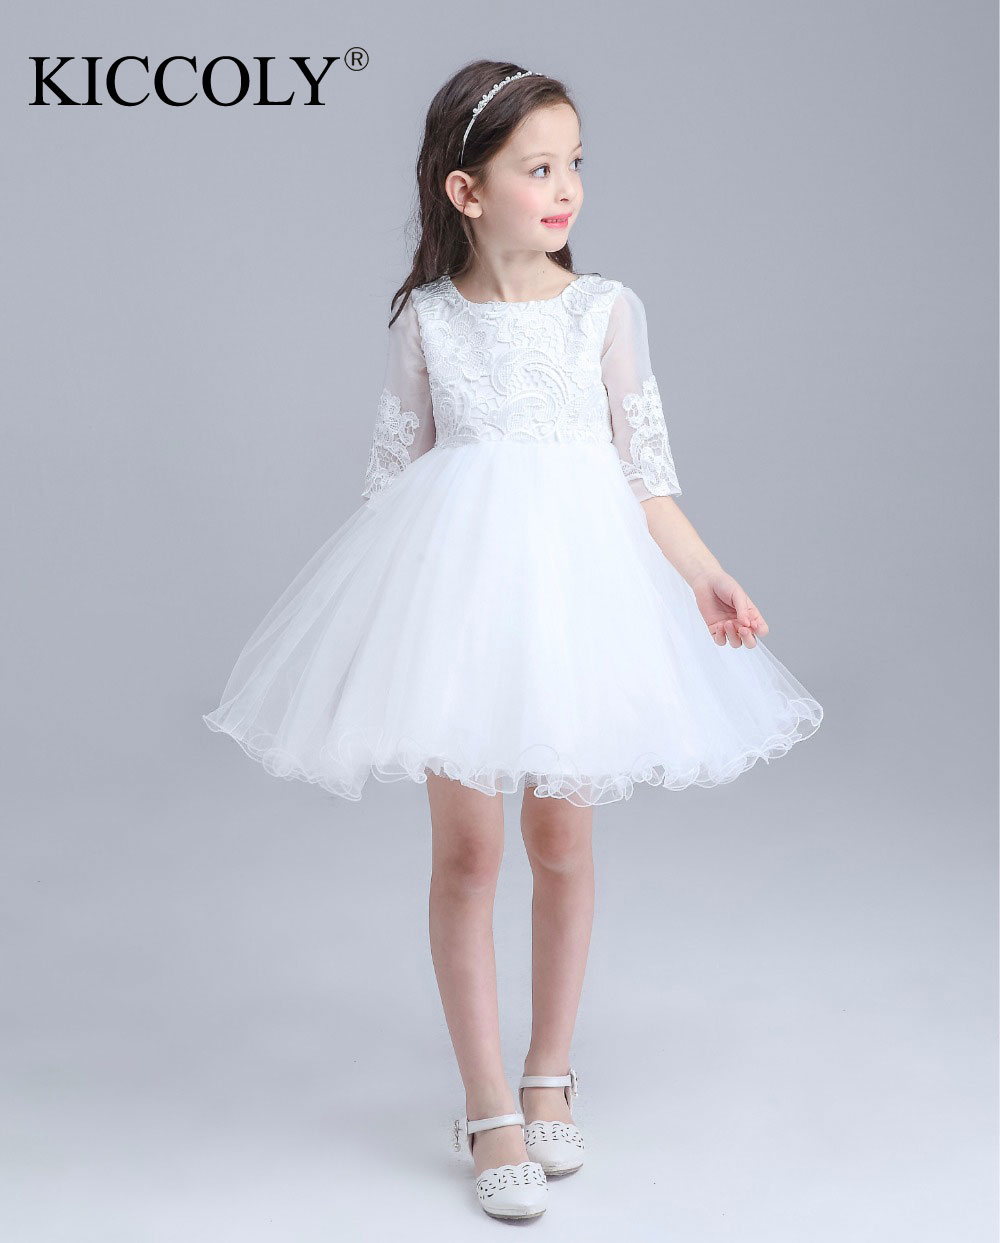 Kids Girls Bridesmaid Wedding Prom Party Ball Gown Formal Flower Party Dresses 2016 Toddler Infant Nine Quarter Princess Dresses kids girls bridesmaid wedding toddler baby girl princess dress sleeveless sequin flower prom party ball gown formal party xd24 c